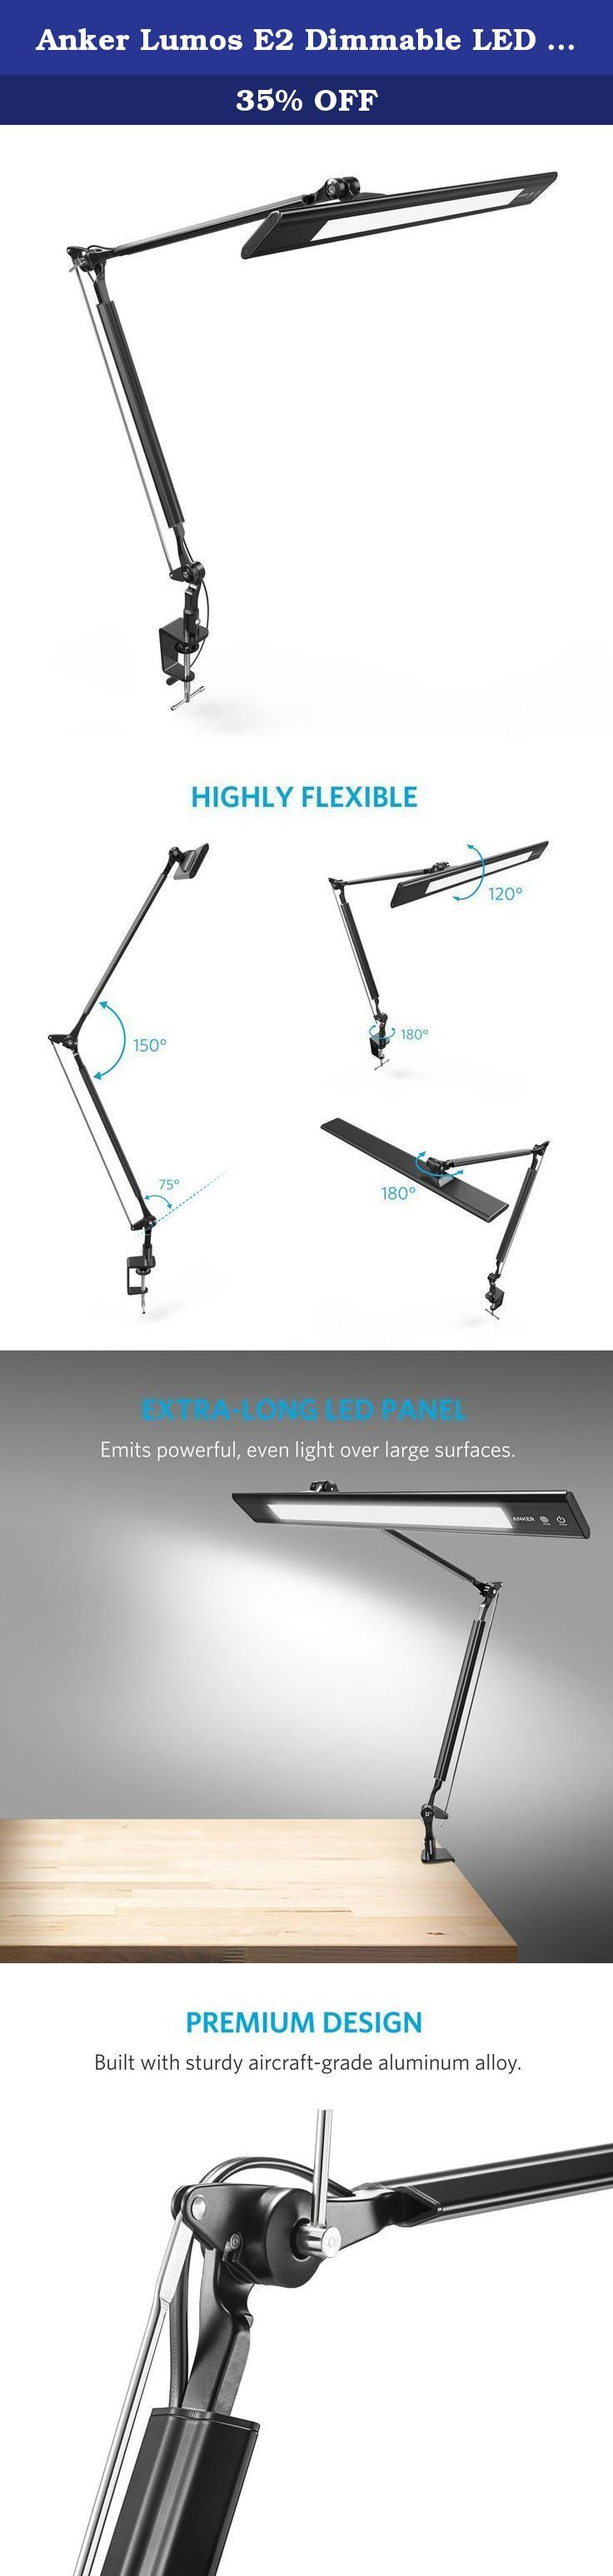 Anker Lumos E2 Dimmable LED Desk Lamp with Portable Clamp Design, Eye-Care Tech, Aluminum-Alloy Material, Touch Sensitive Control Panel, 4- Lighting/ Color Modes, 4-Level Dimmer, Highly Adjustable Arm. Lumos E2 The Premium Eco-Friendly LED Desk Lamp From ANKER, the Choice of 10 Million+ Happy Users • Industry-Leading Technology • 99% Positive Feedback Energy-Efficient Lighting Lumos E2 is built with power-saving LEDs that have a 50, 000-hour lifespan, allowing up to 20 years of use. Using...